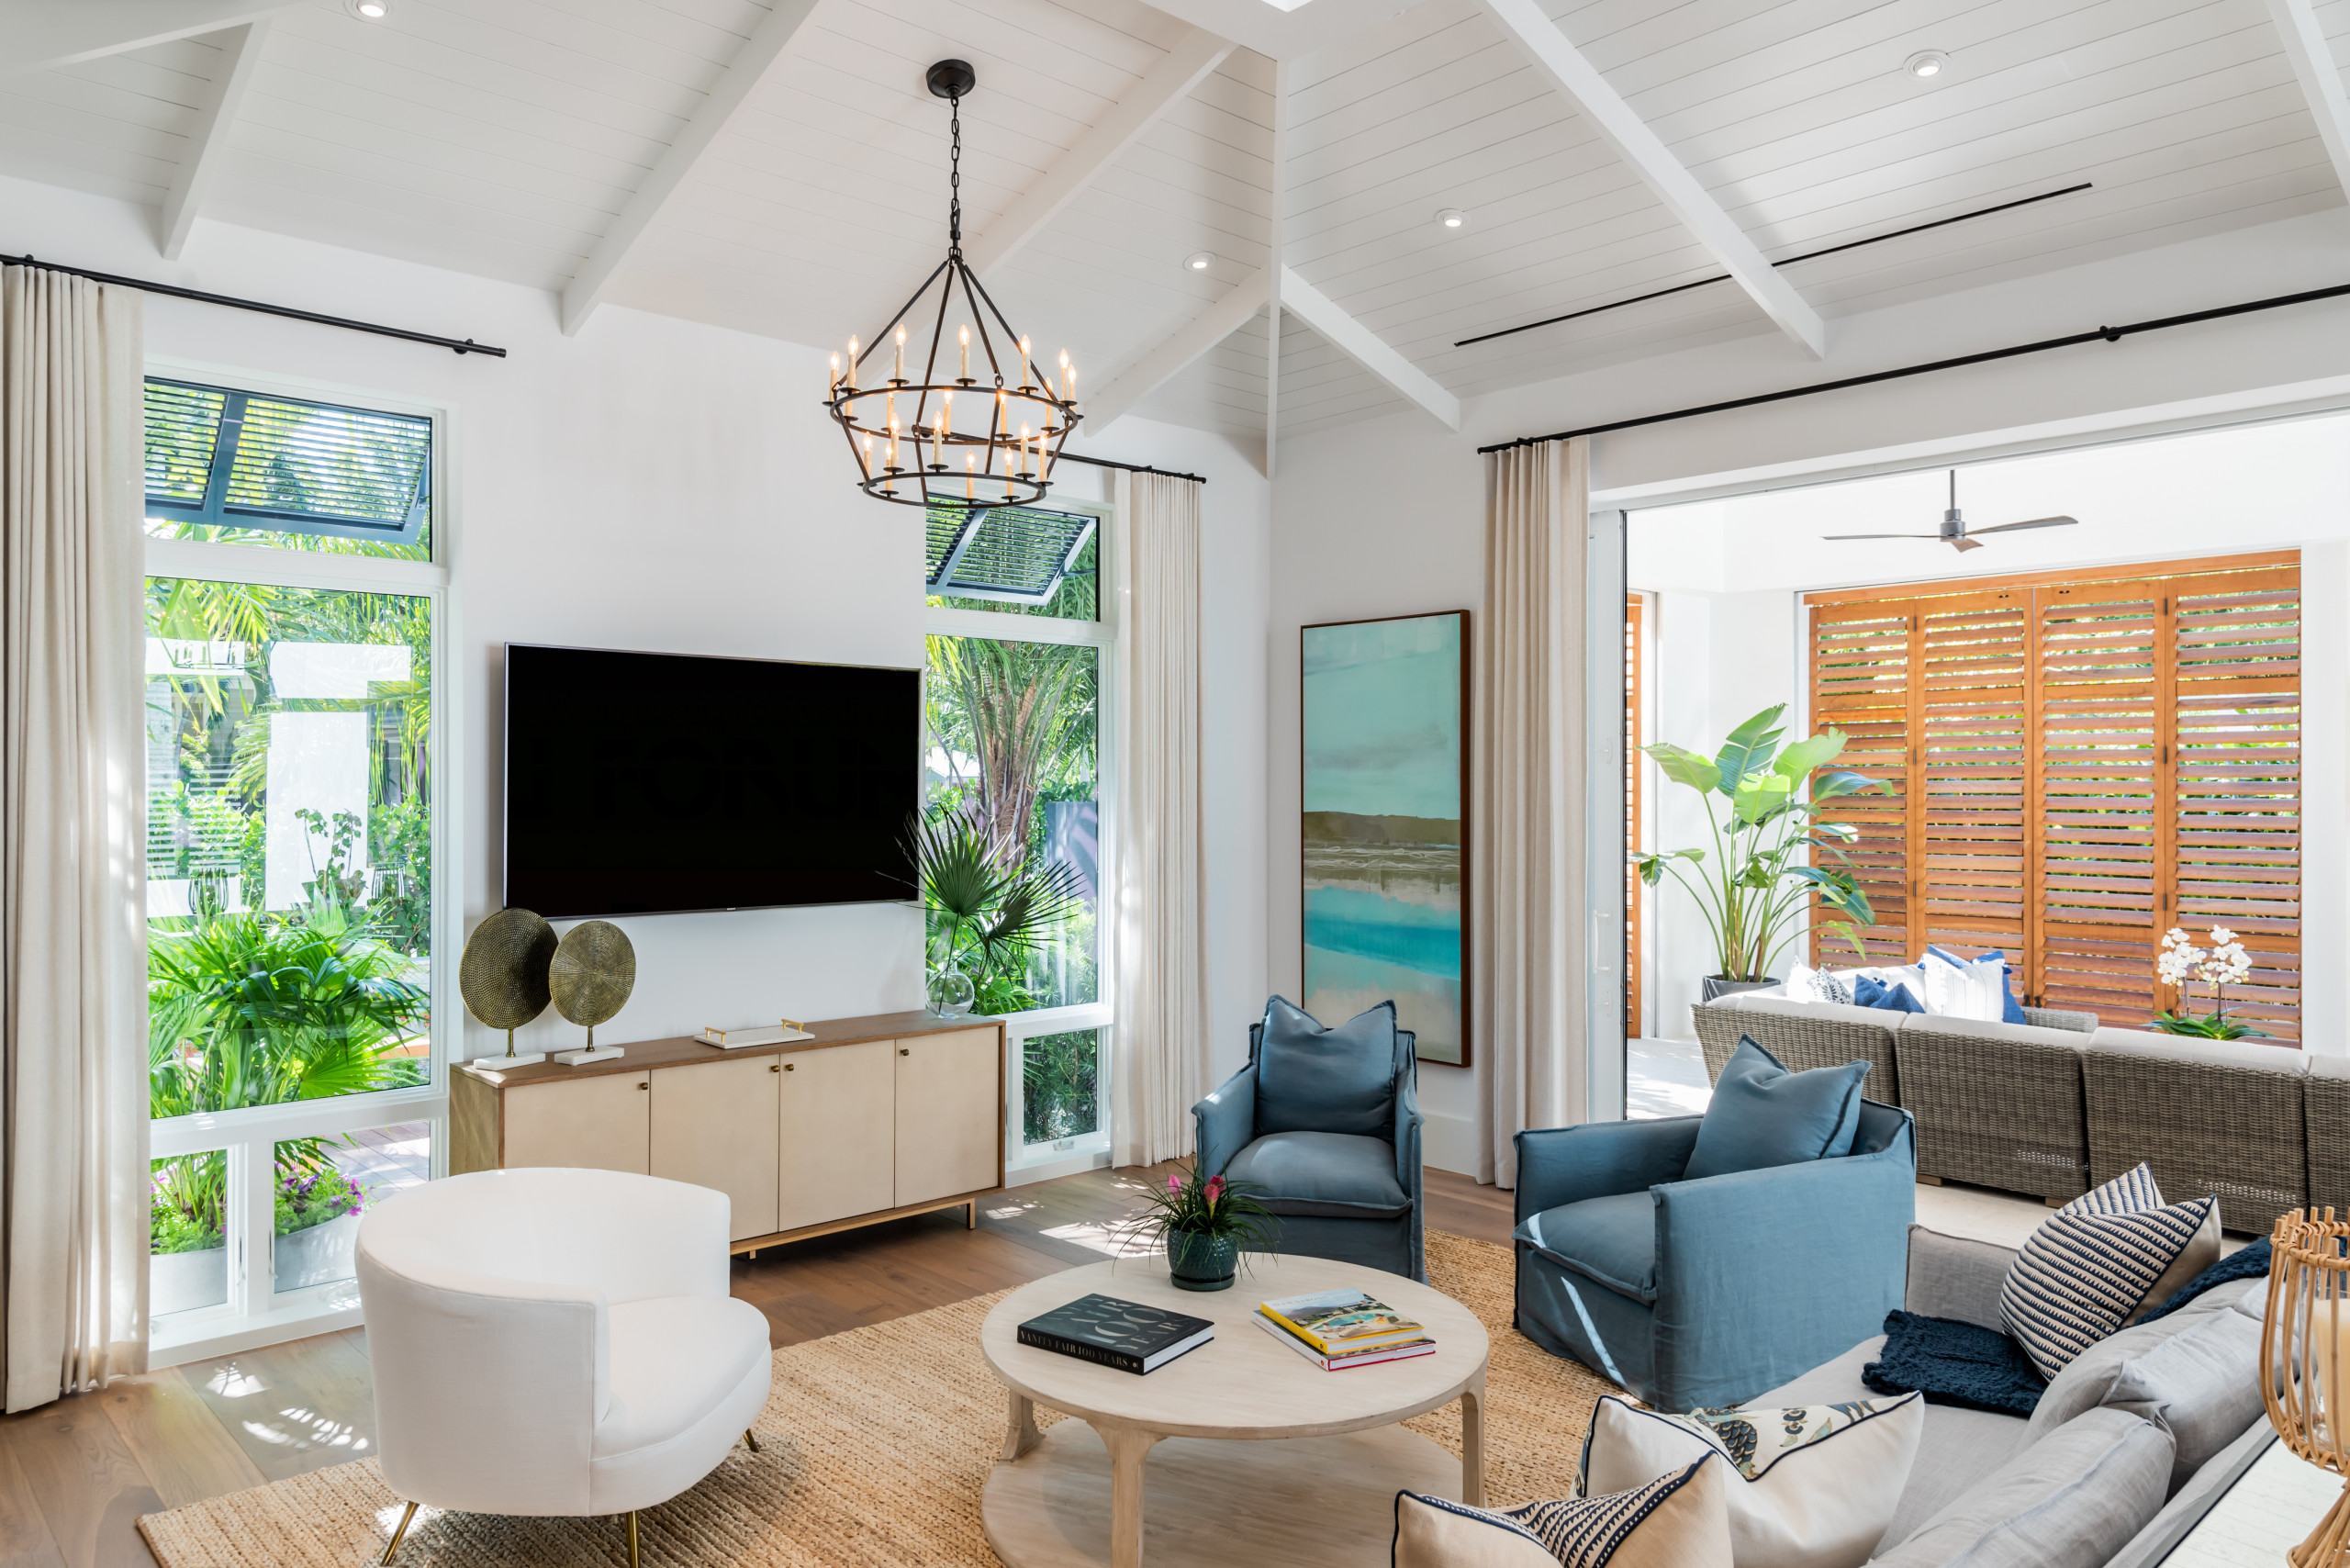 75 Beautiful Living Room Pictures Ideas March 2021 Houzz